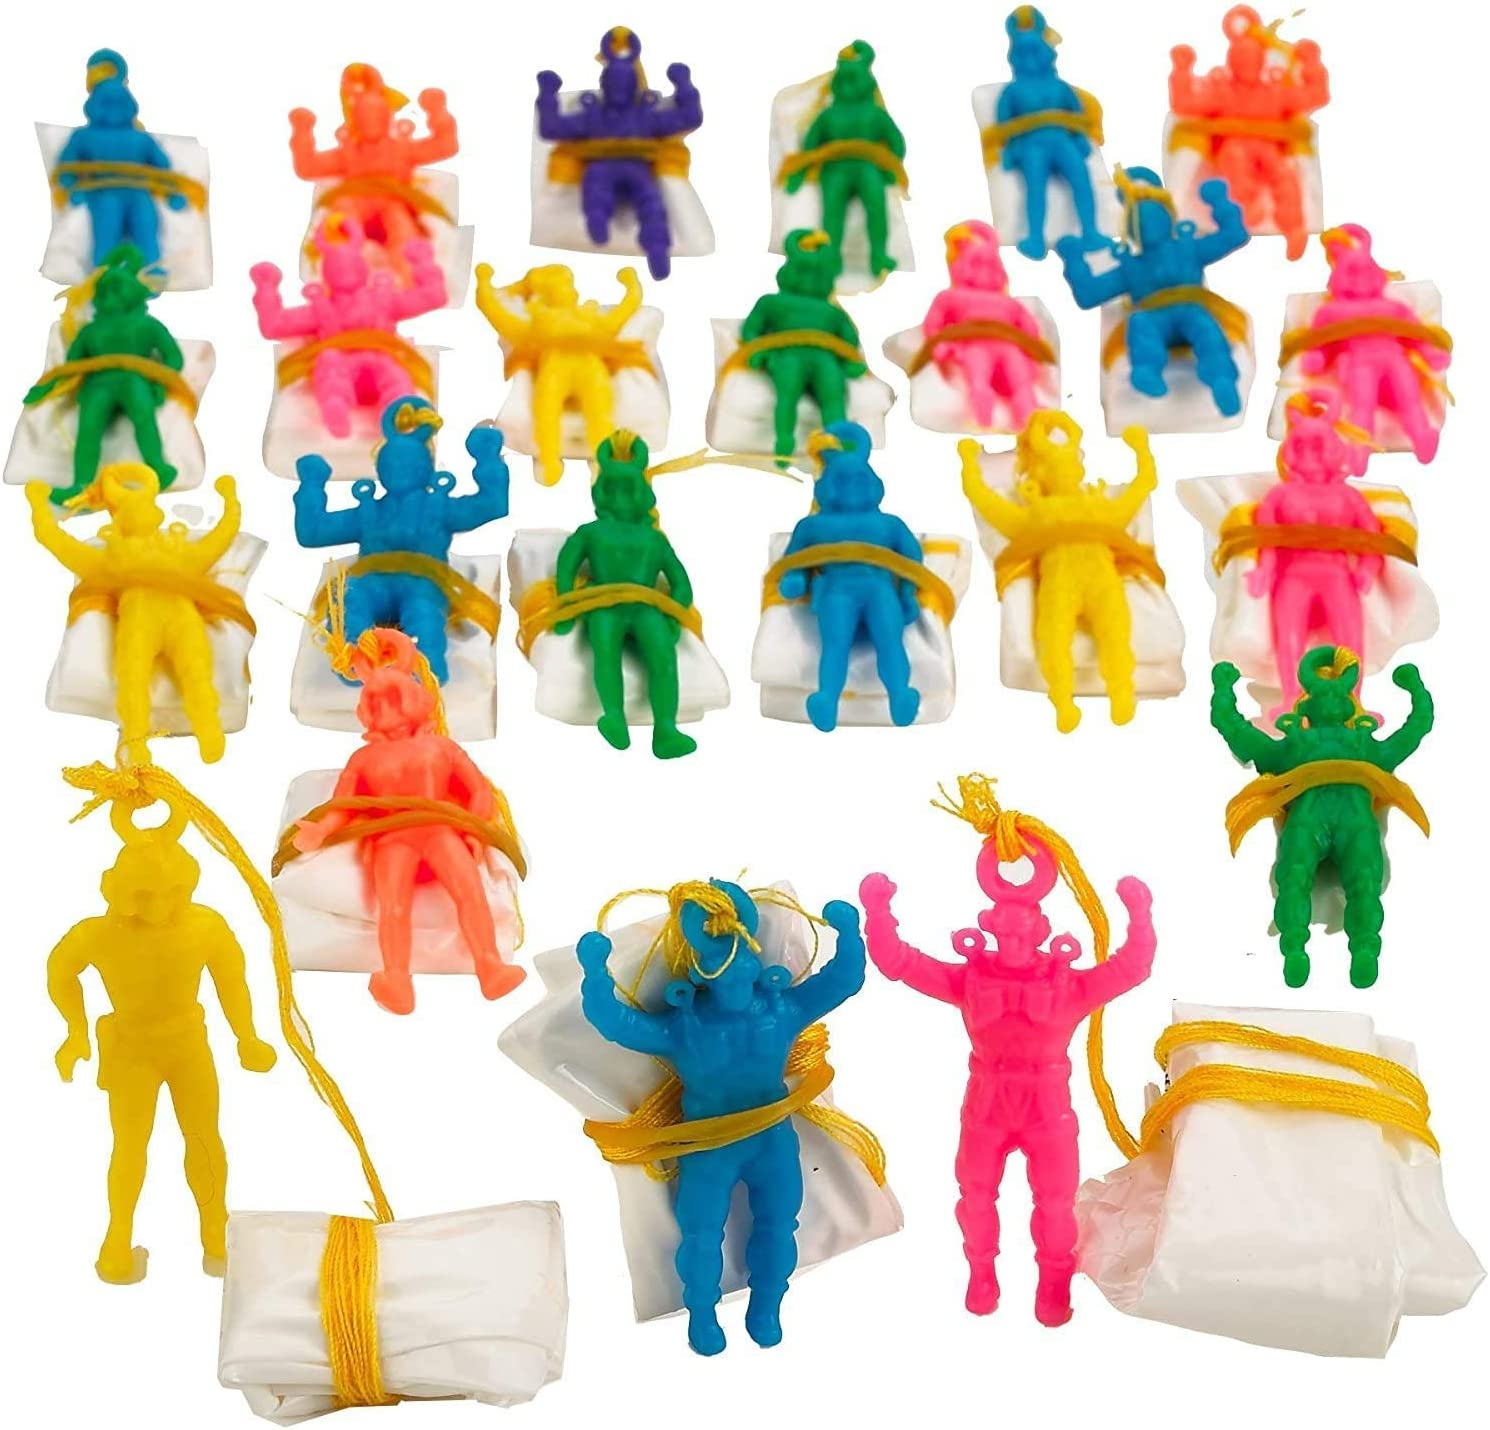 1.75 Inch 48 Pack Parachute Men Party Favors Kicko Mini Vinyl Paratroopers for Kids Girls Boys Bag Stuffers Toys Prizes Assorted Colors Cool Airborne Army Guy Action Figures